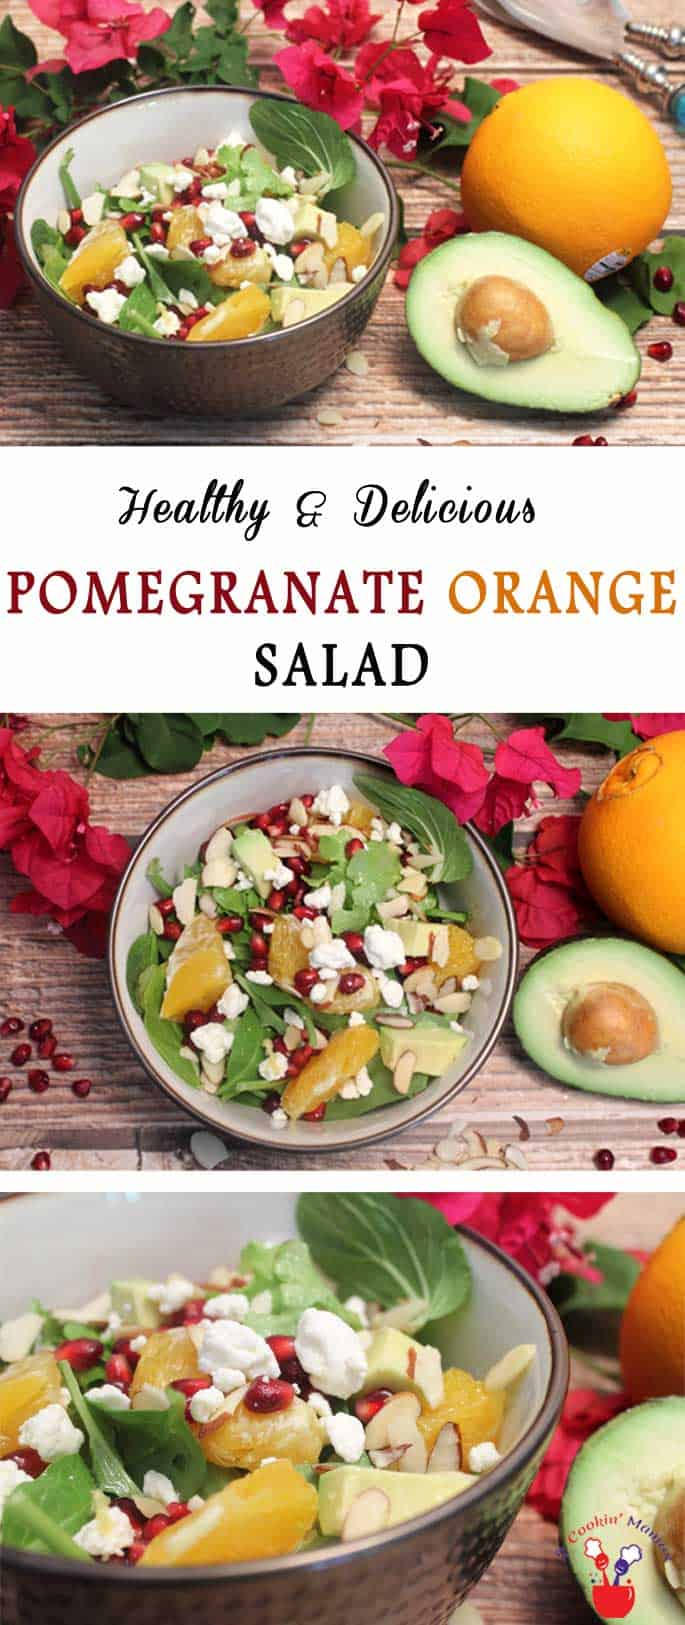 Our Pomegranate Orange Salad is colorful, light & healthy. Oranges,pomegranate seeds, avocado & almonds are tossed with a light dressing for a tasty side.